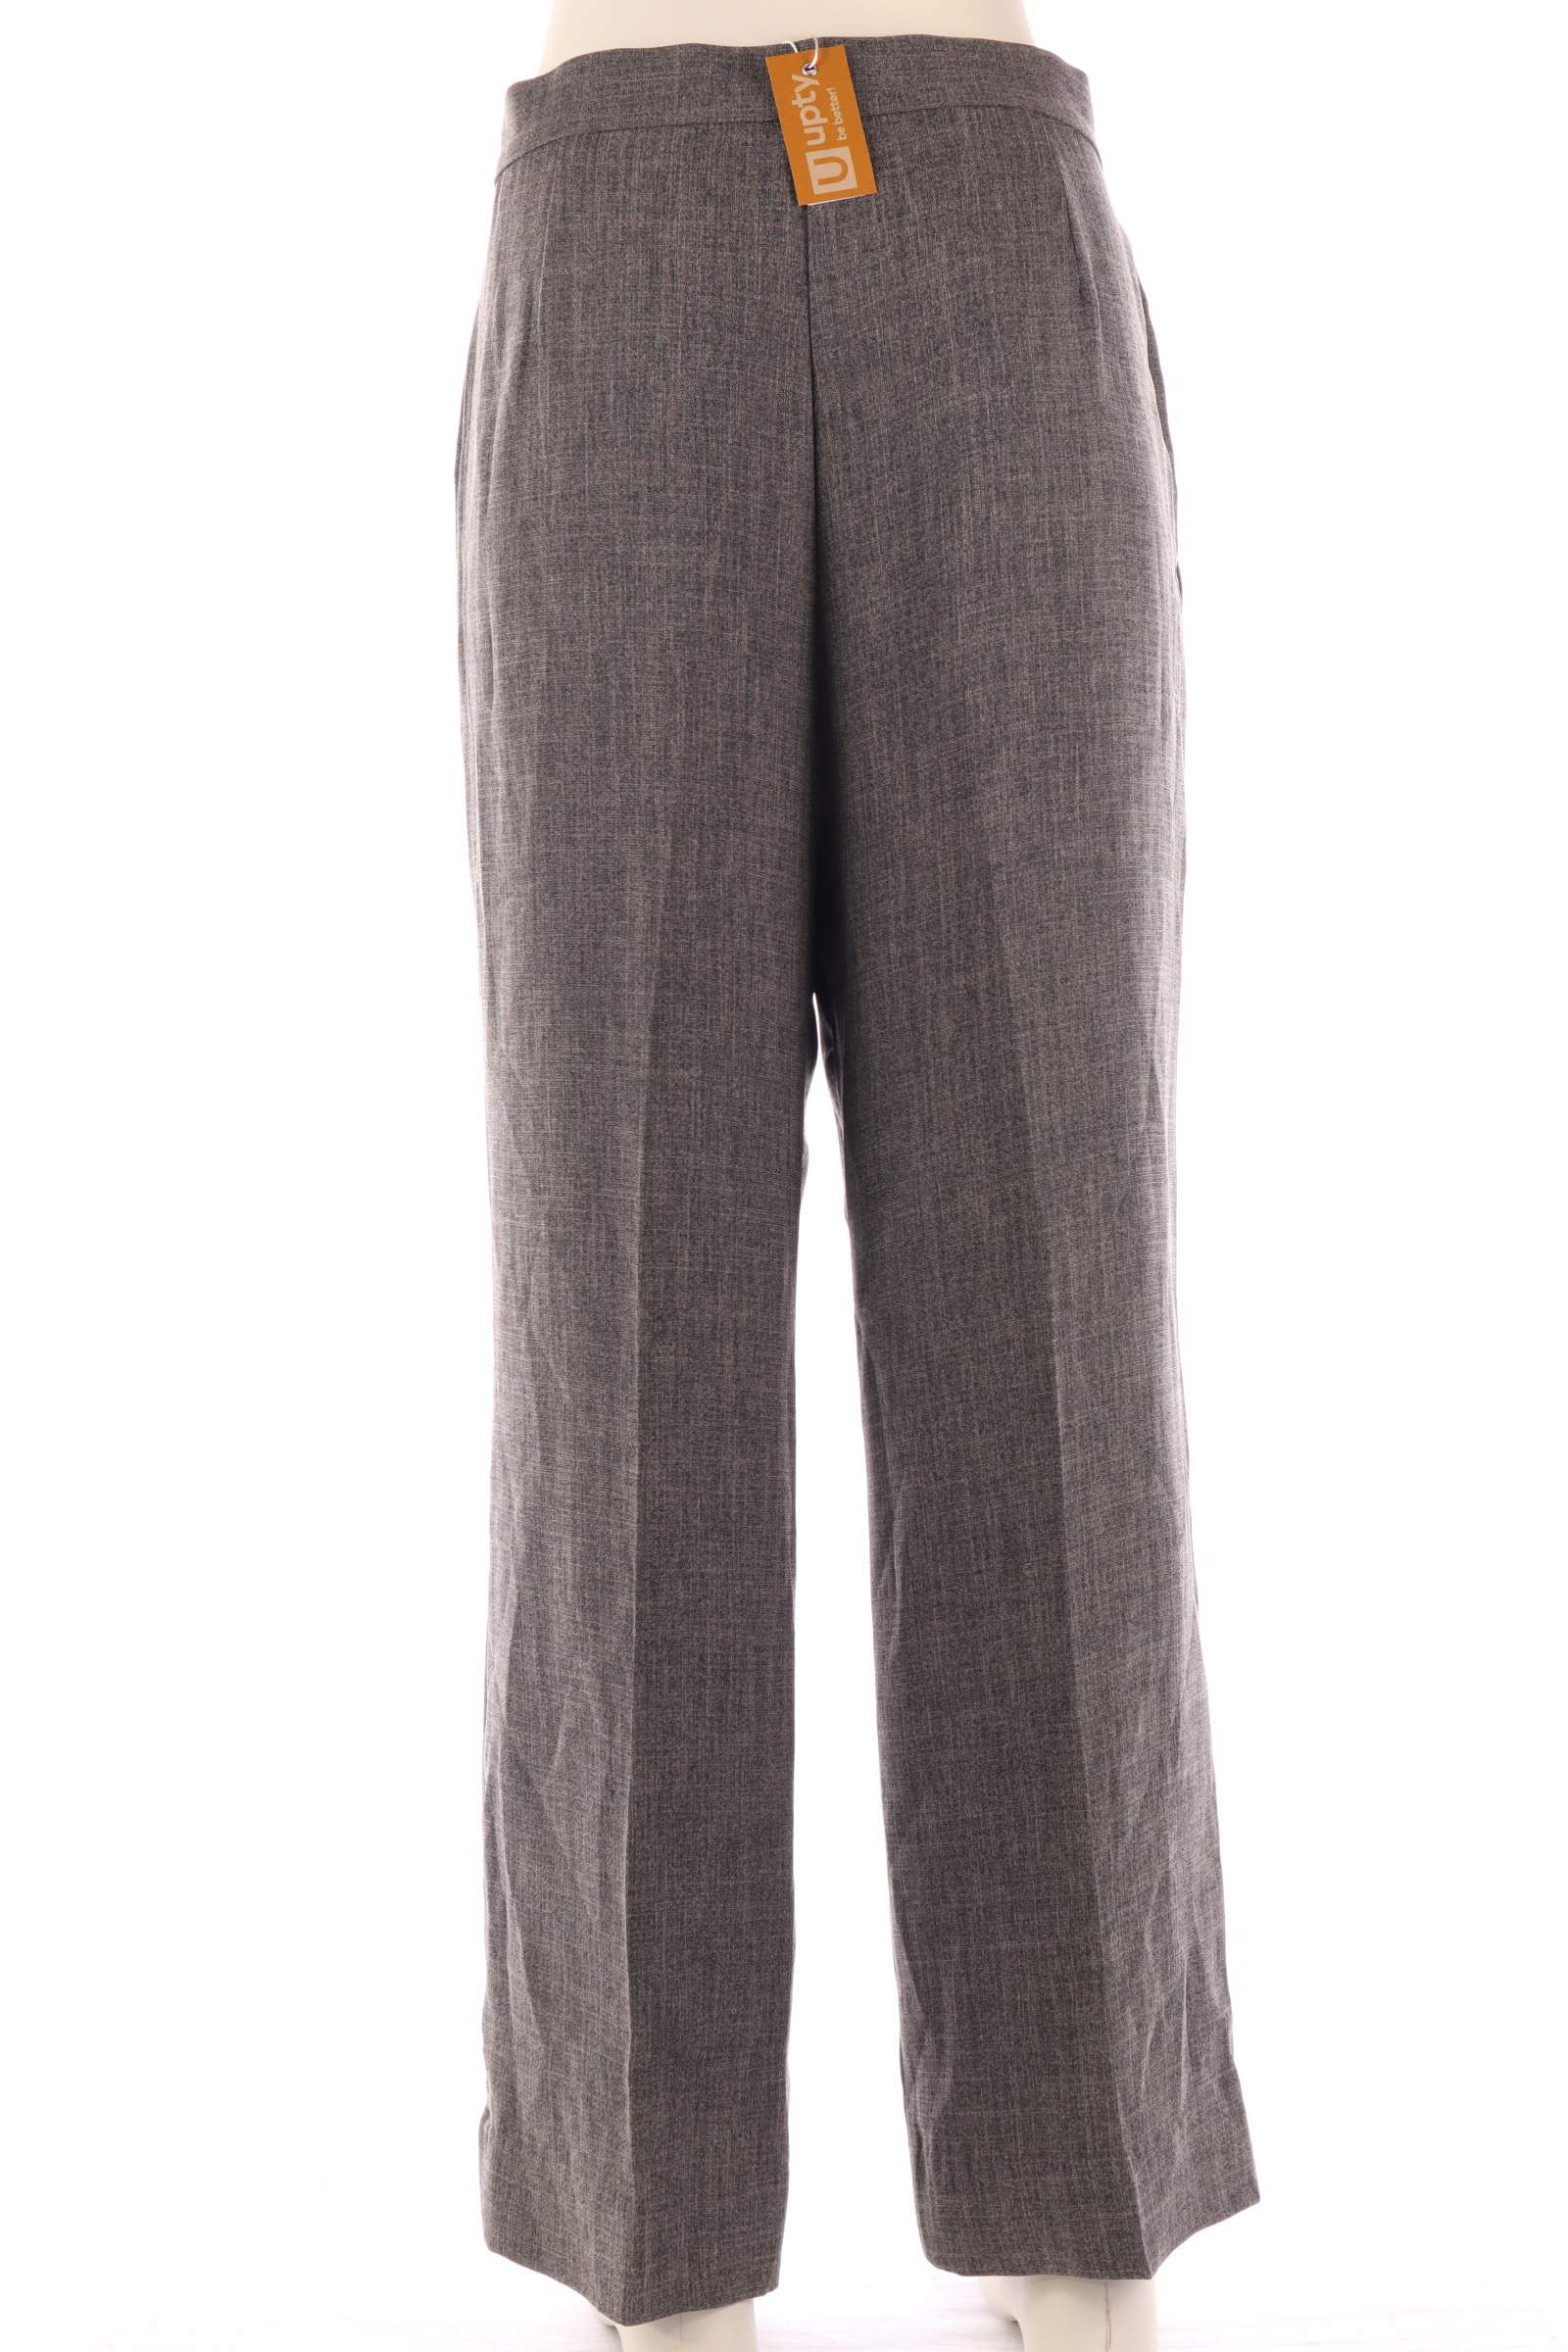 Marks&Spencer Gray Pants - upty.store